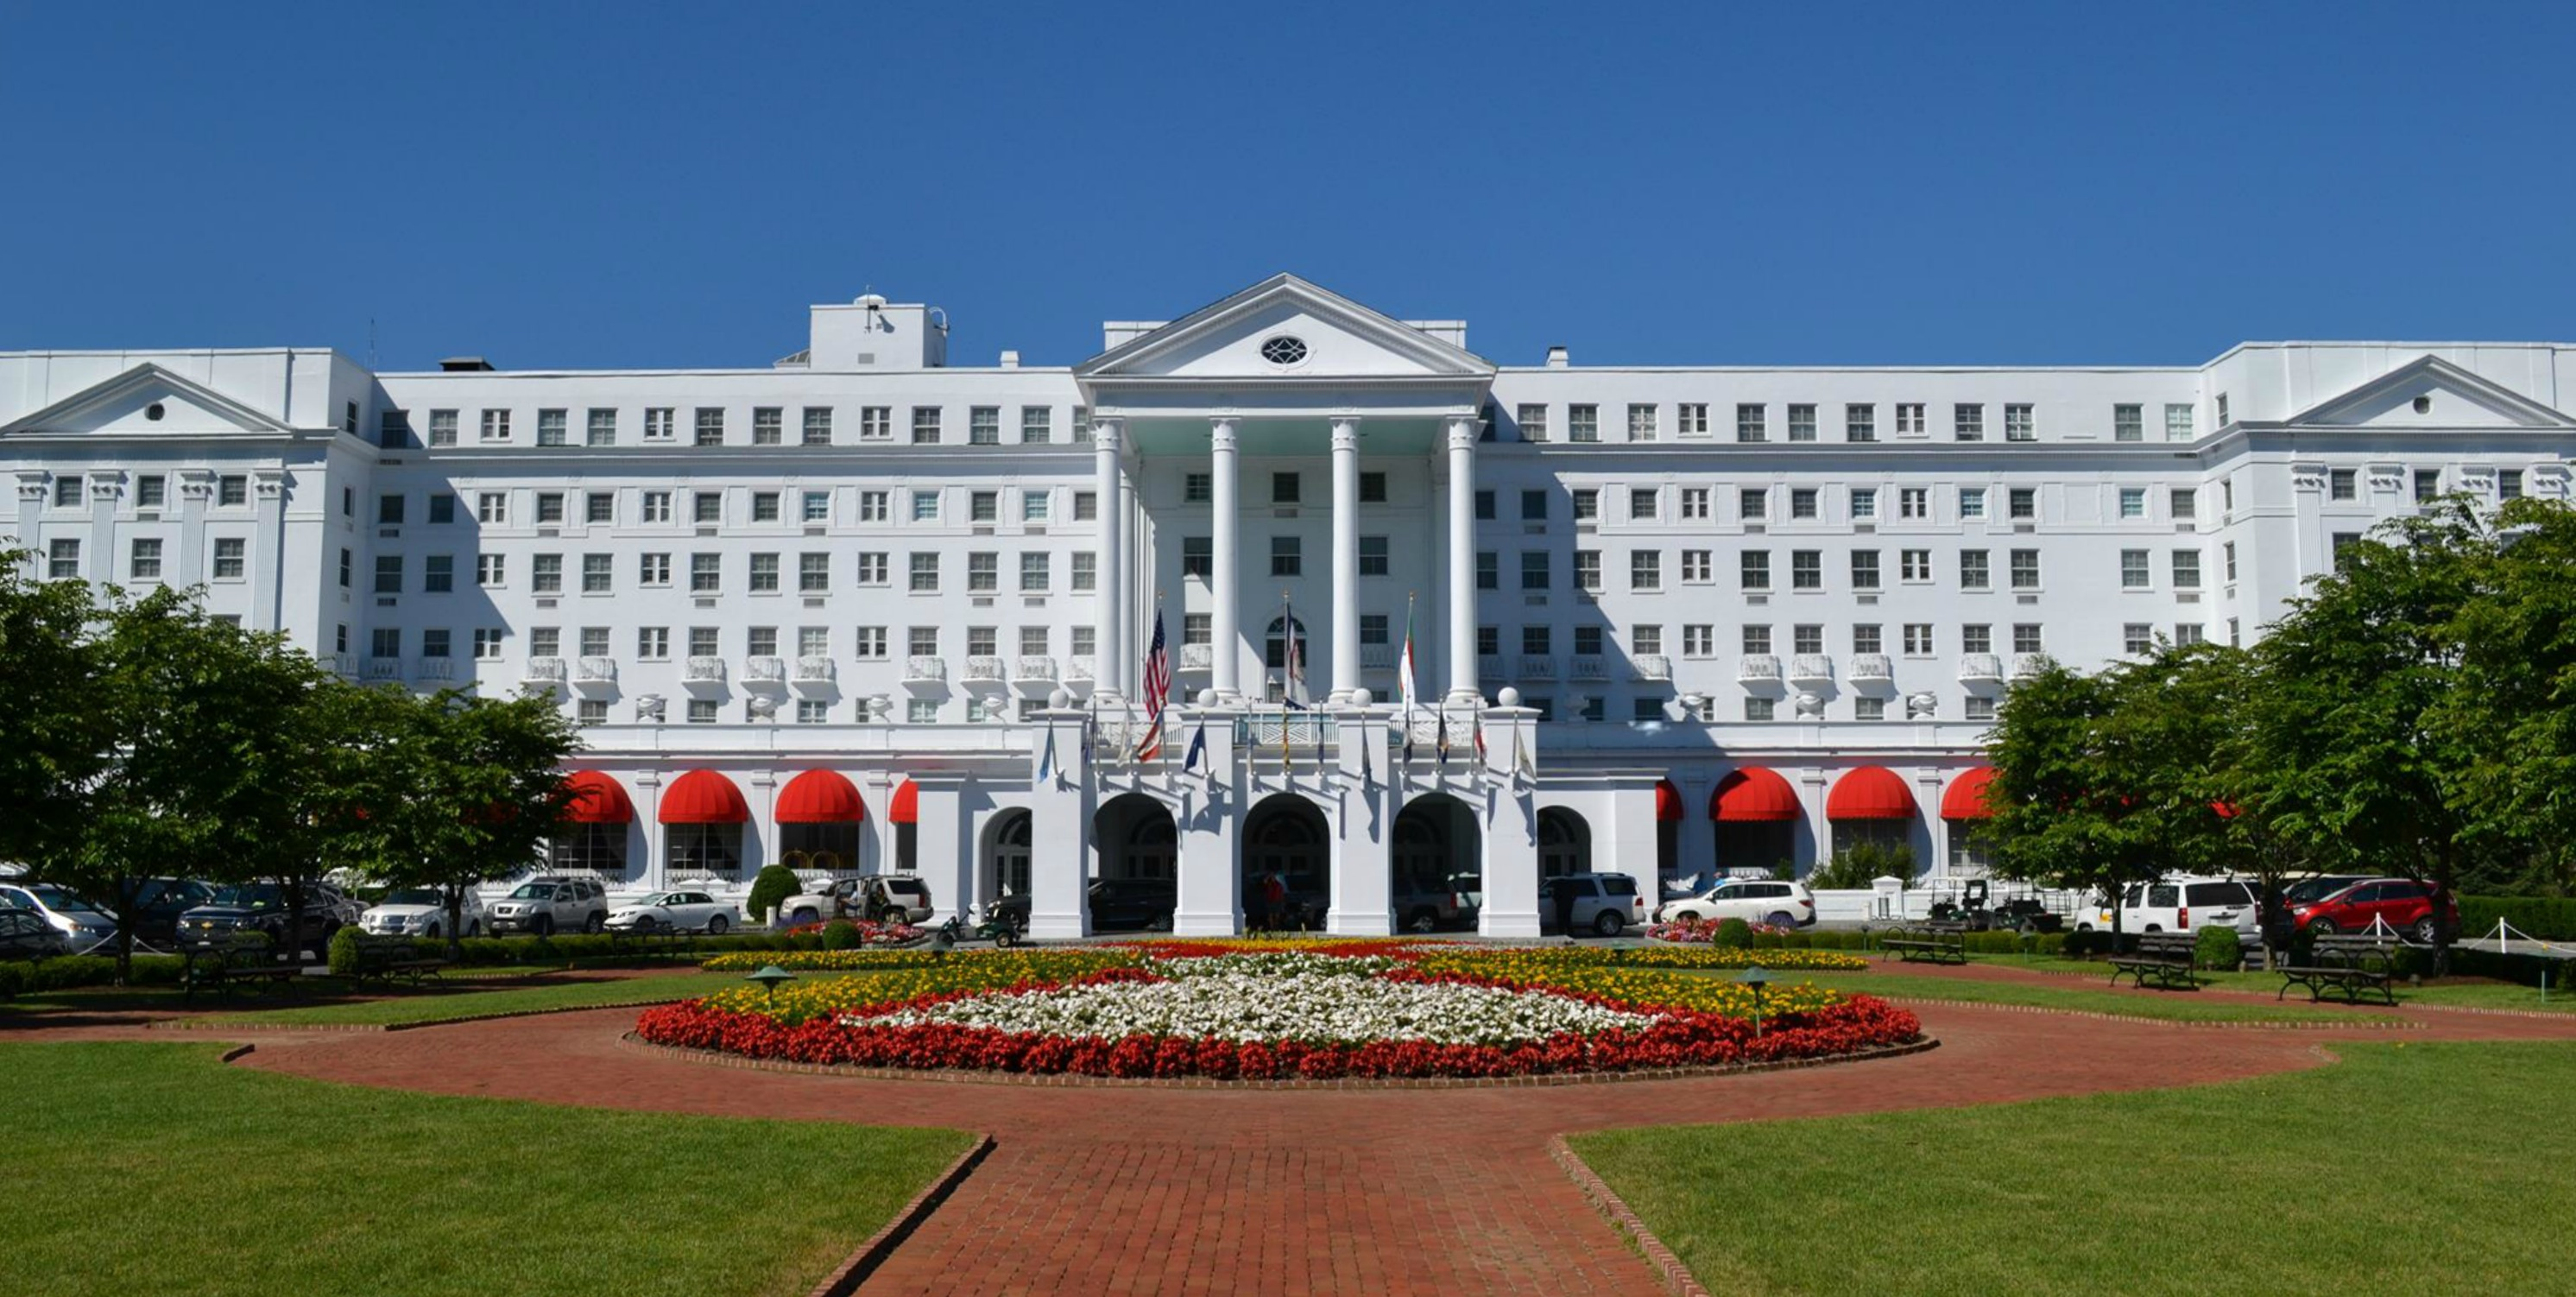 greenbrier resort, anniversary trip